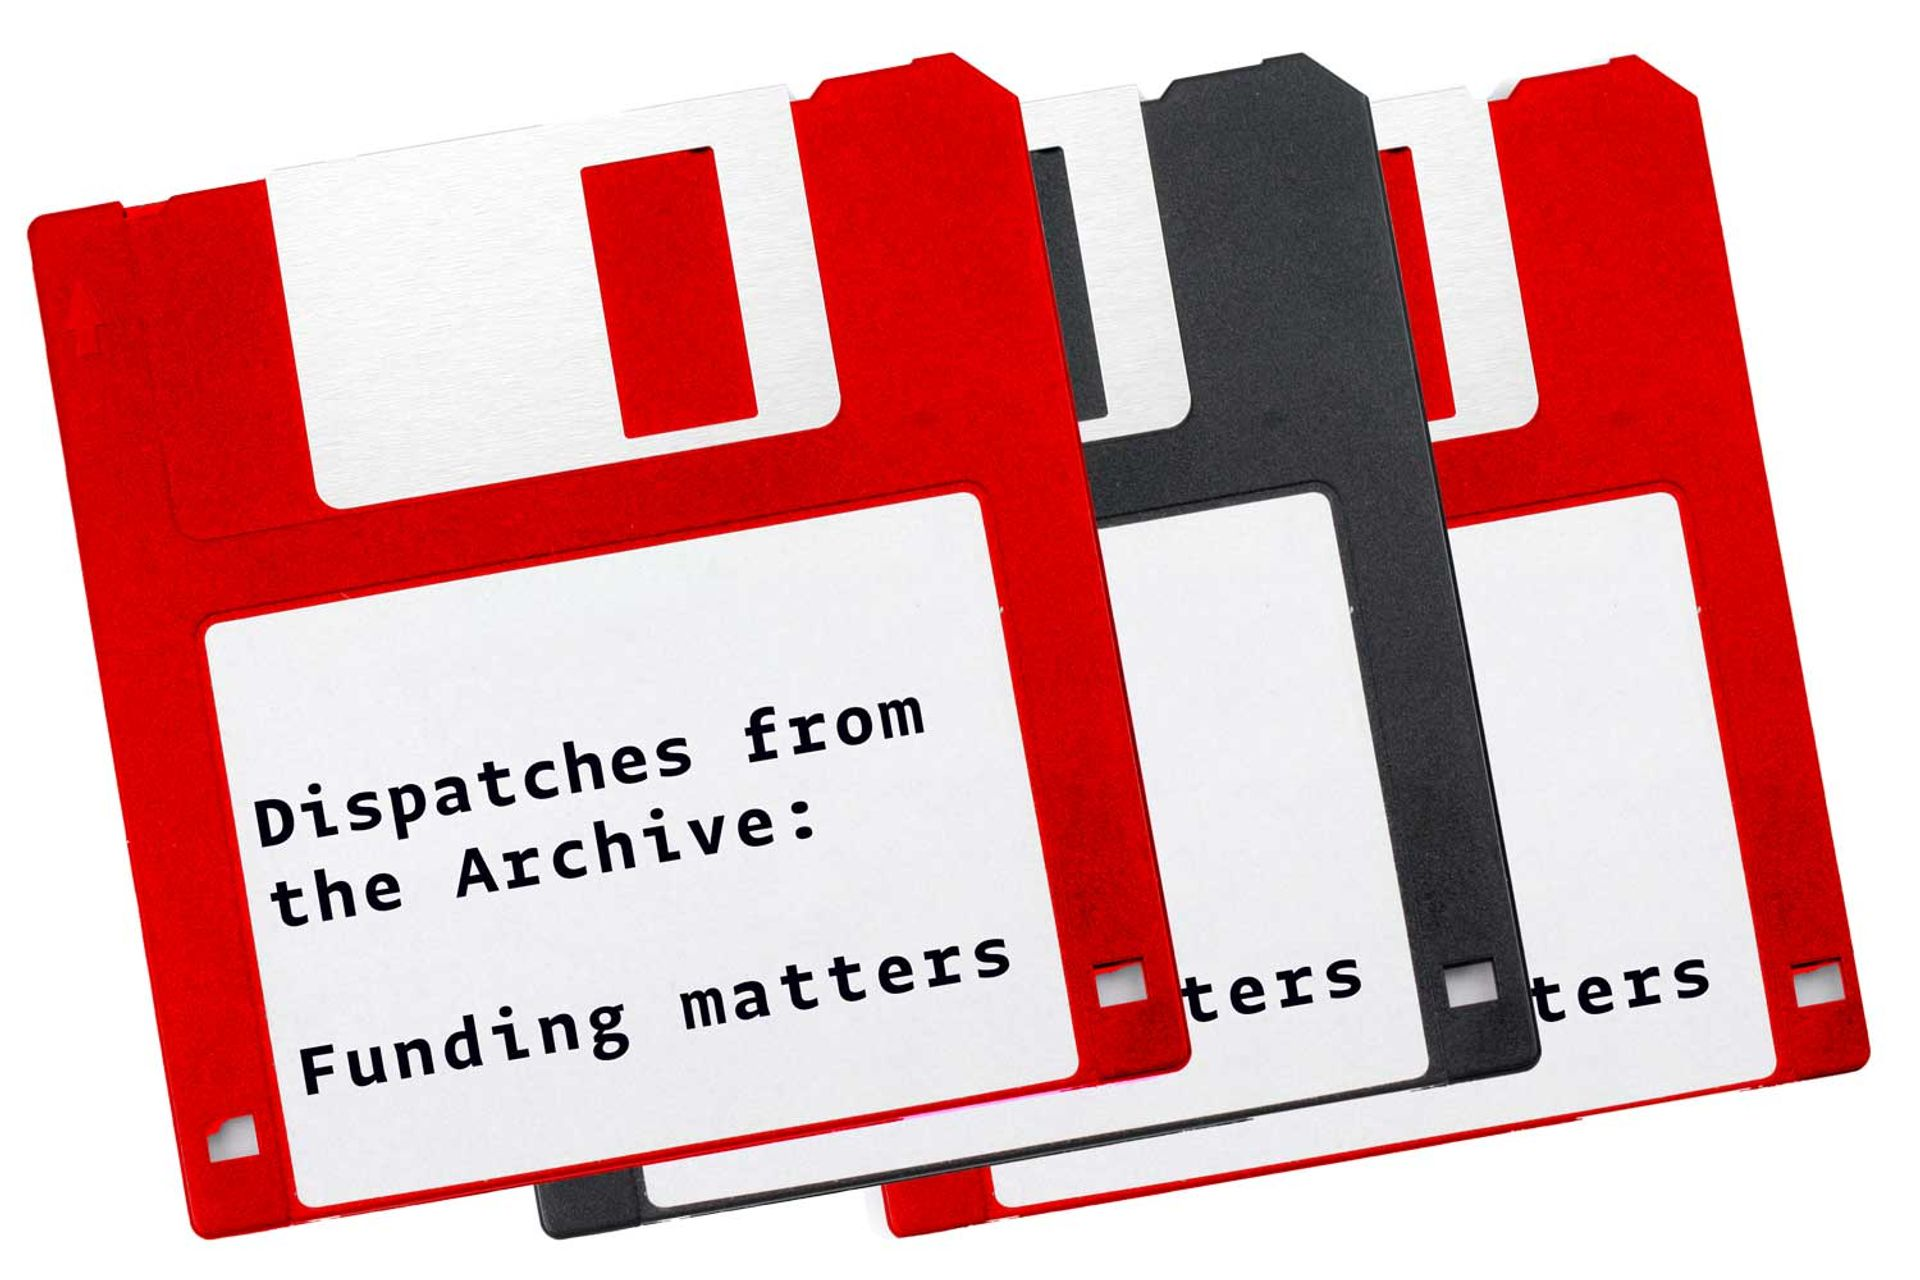 Dispatches from the archive: Funding matters